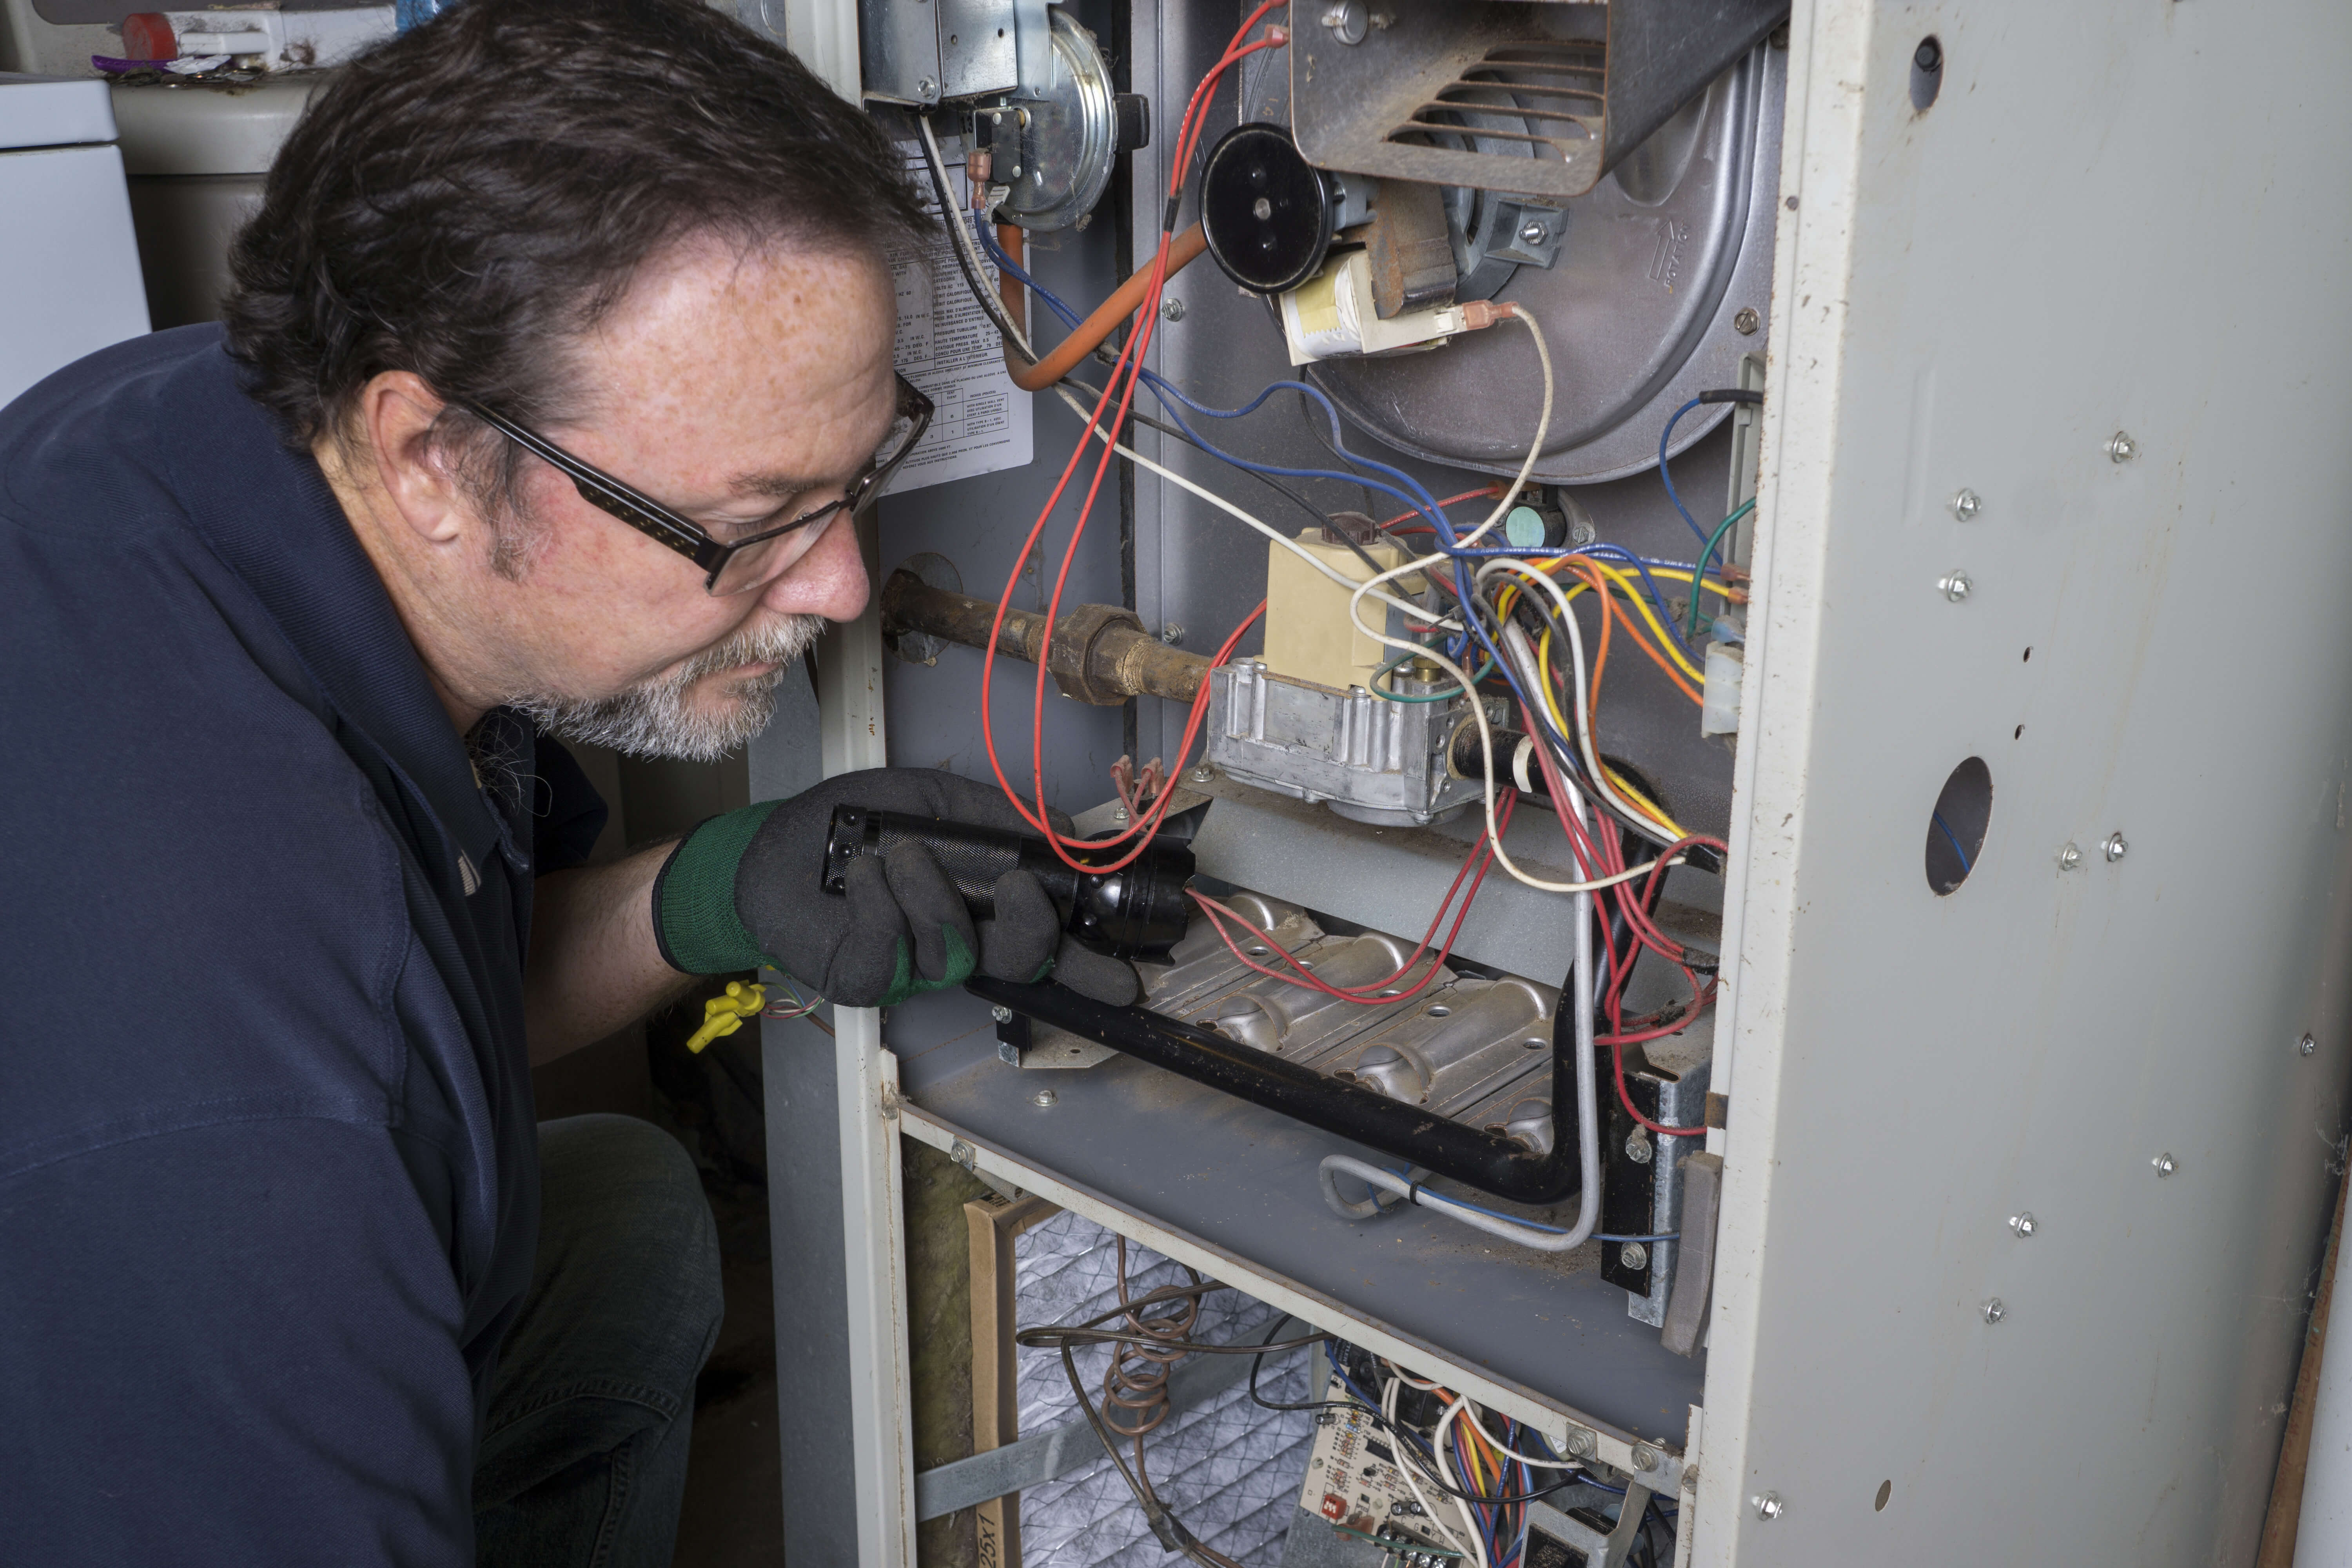 furnace maintenance in Illinois by Lake Cook Plumbing